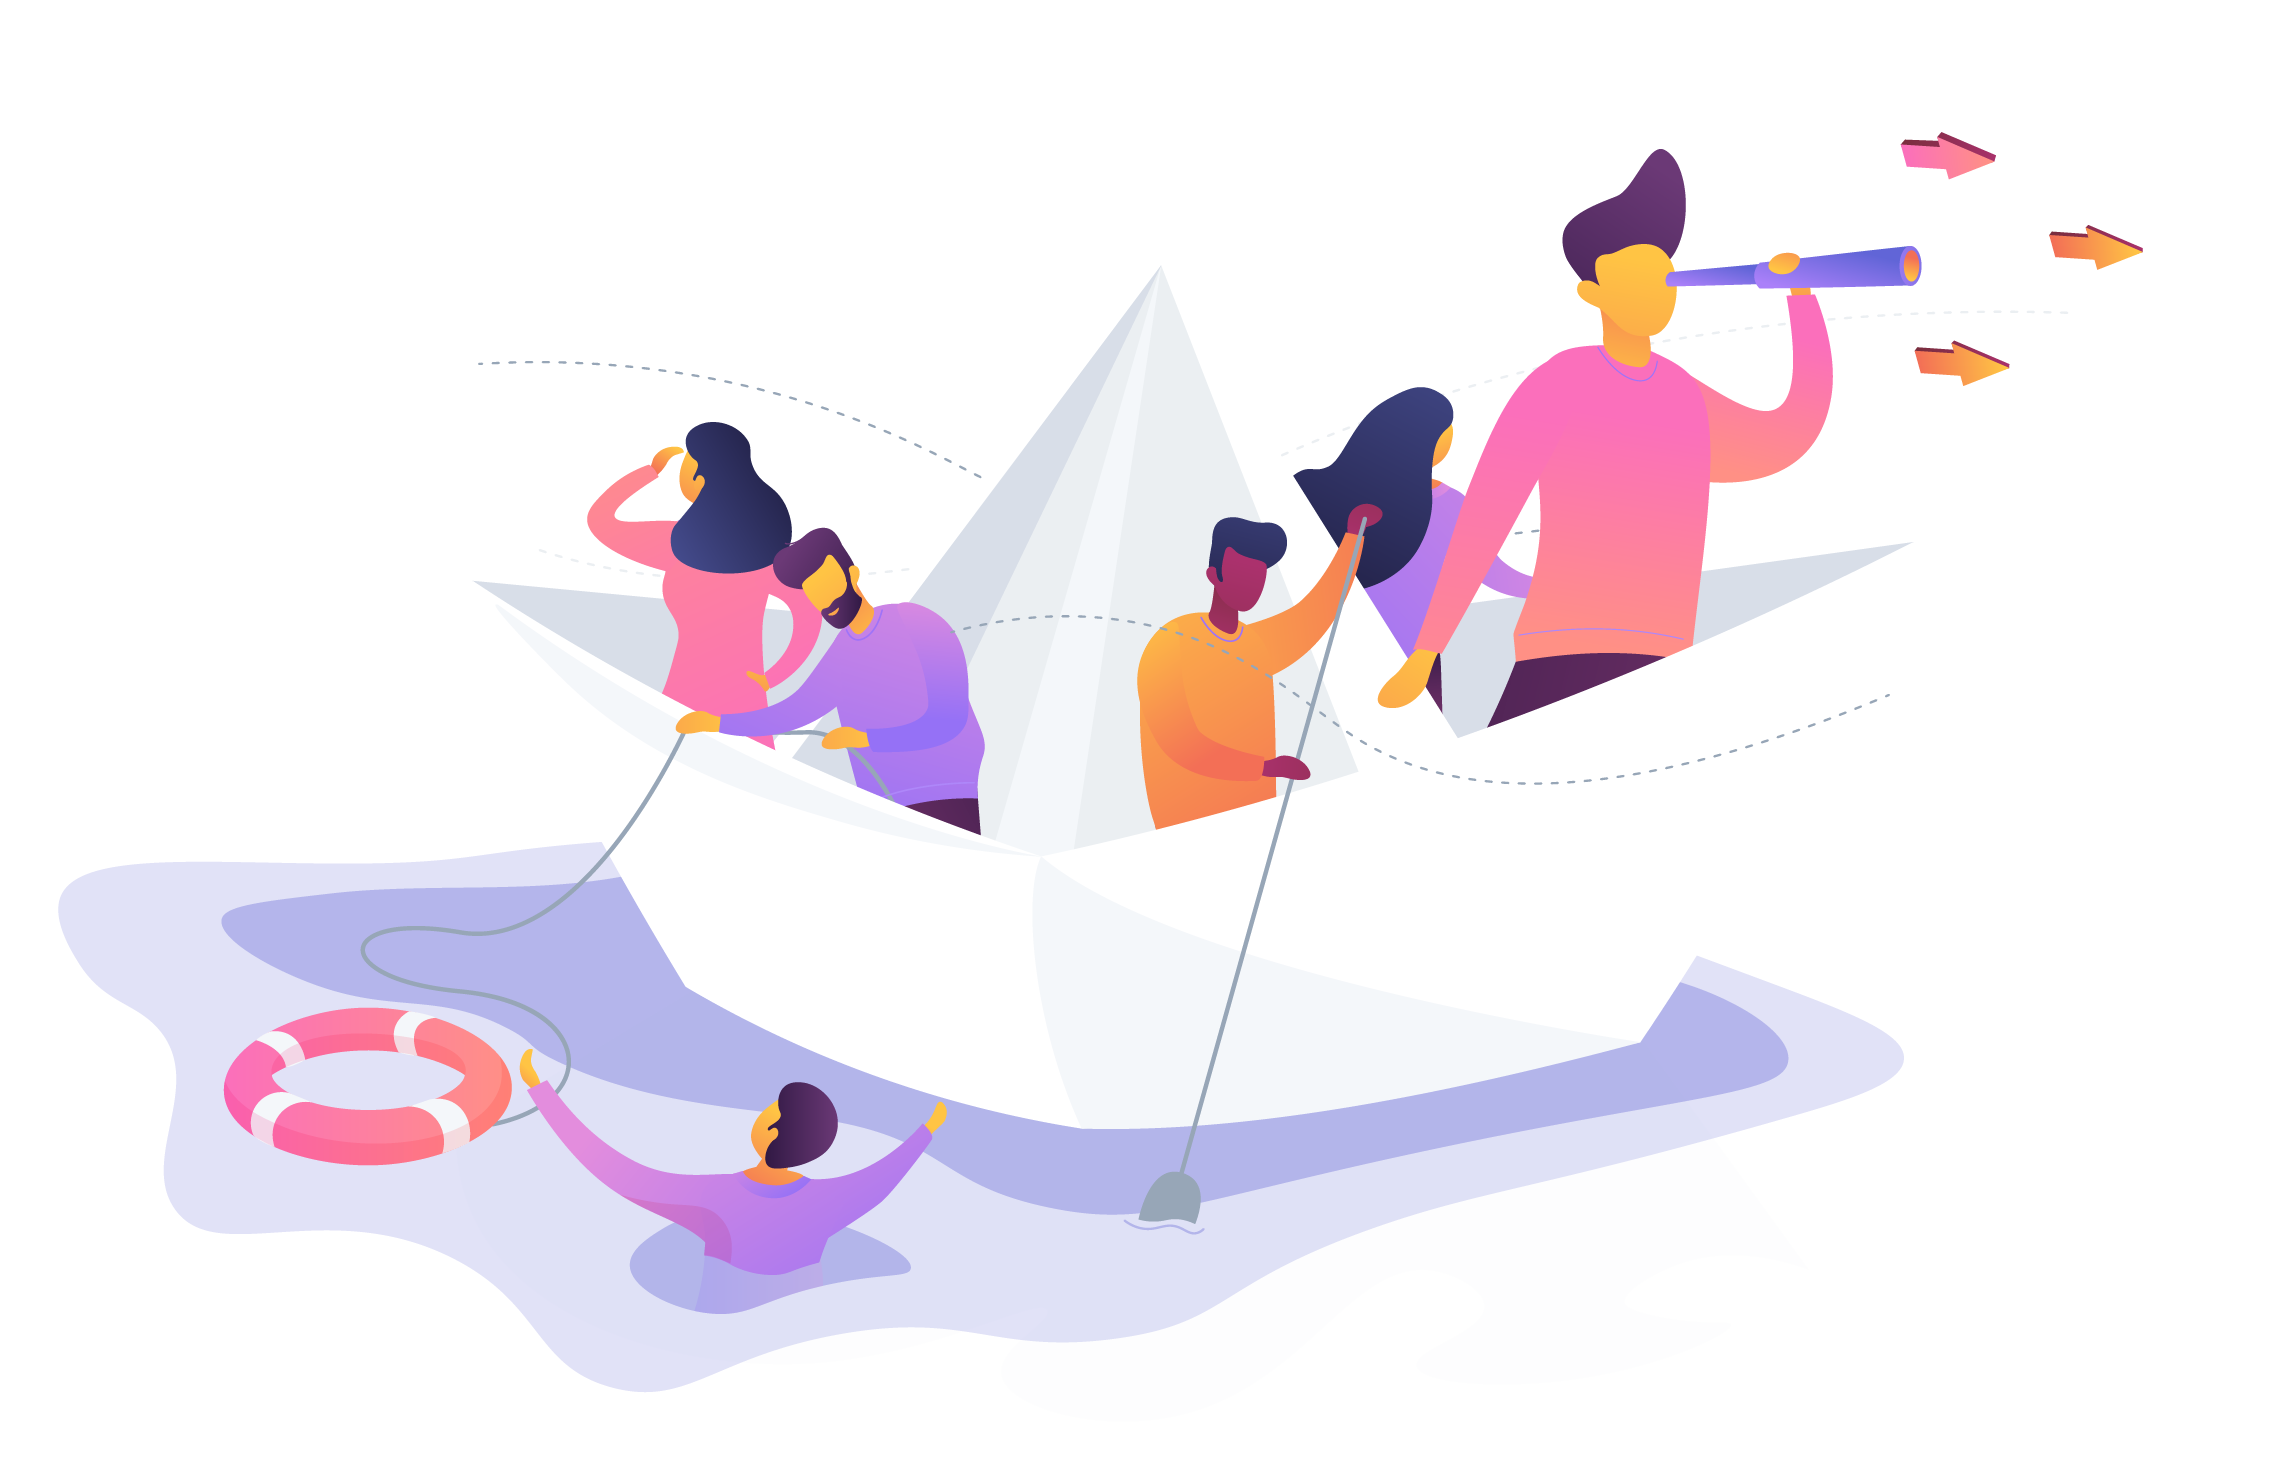 An illustration showing a group of people on a paper boat. One person holding a looking glass while looking off into the distance. Another is rope connected to a lifesaver that is in the water next to a third person in the water. They seem to be working together to navigate the boat.